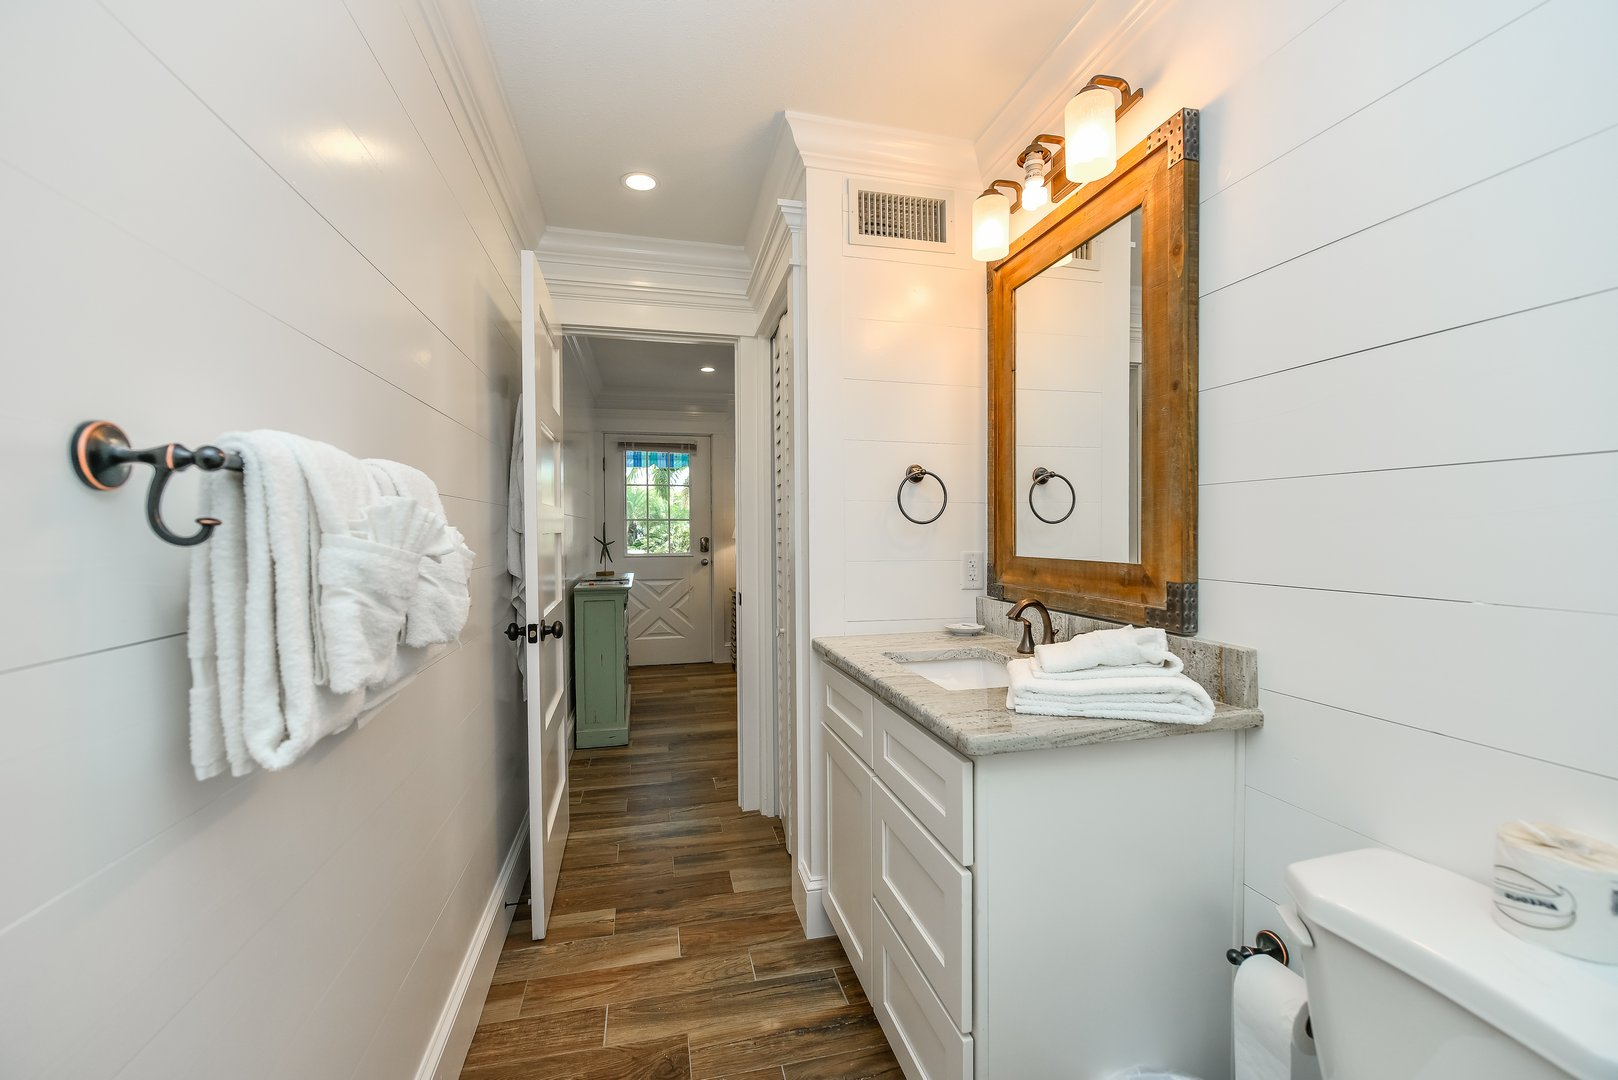 Vanity and bathroom entrance